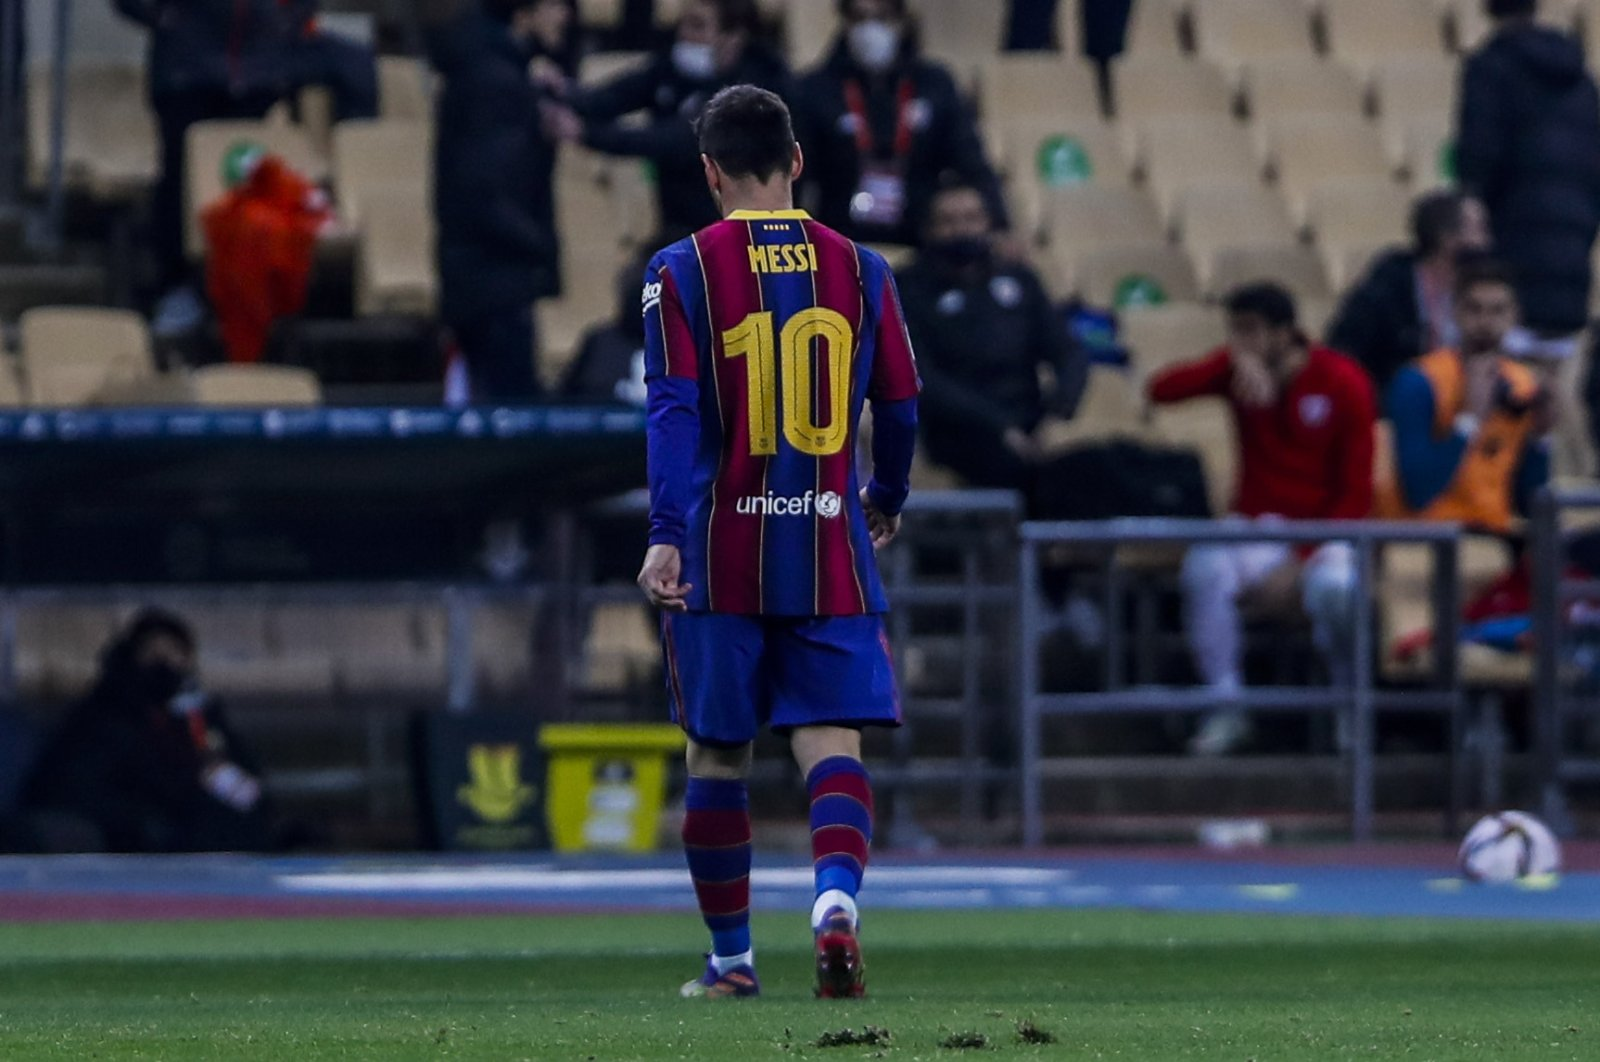 Barcelona's Lionel Messi walks out of the pitch after being sent off during the Spanish Super Cup final against Athletic Bilbao at La Cartuja Stadium, Seville, Spain, Jan. 17, 2021. (AP Photo)